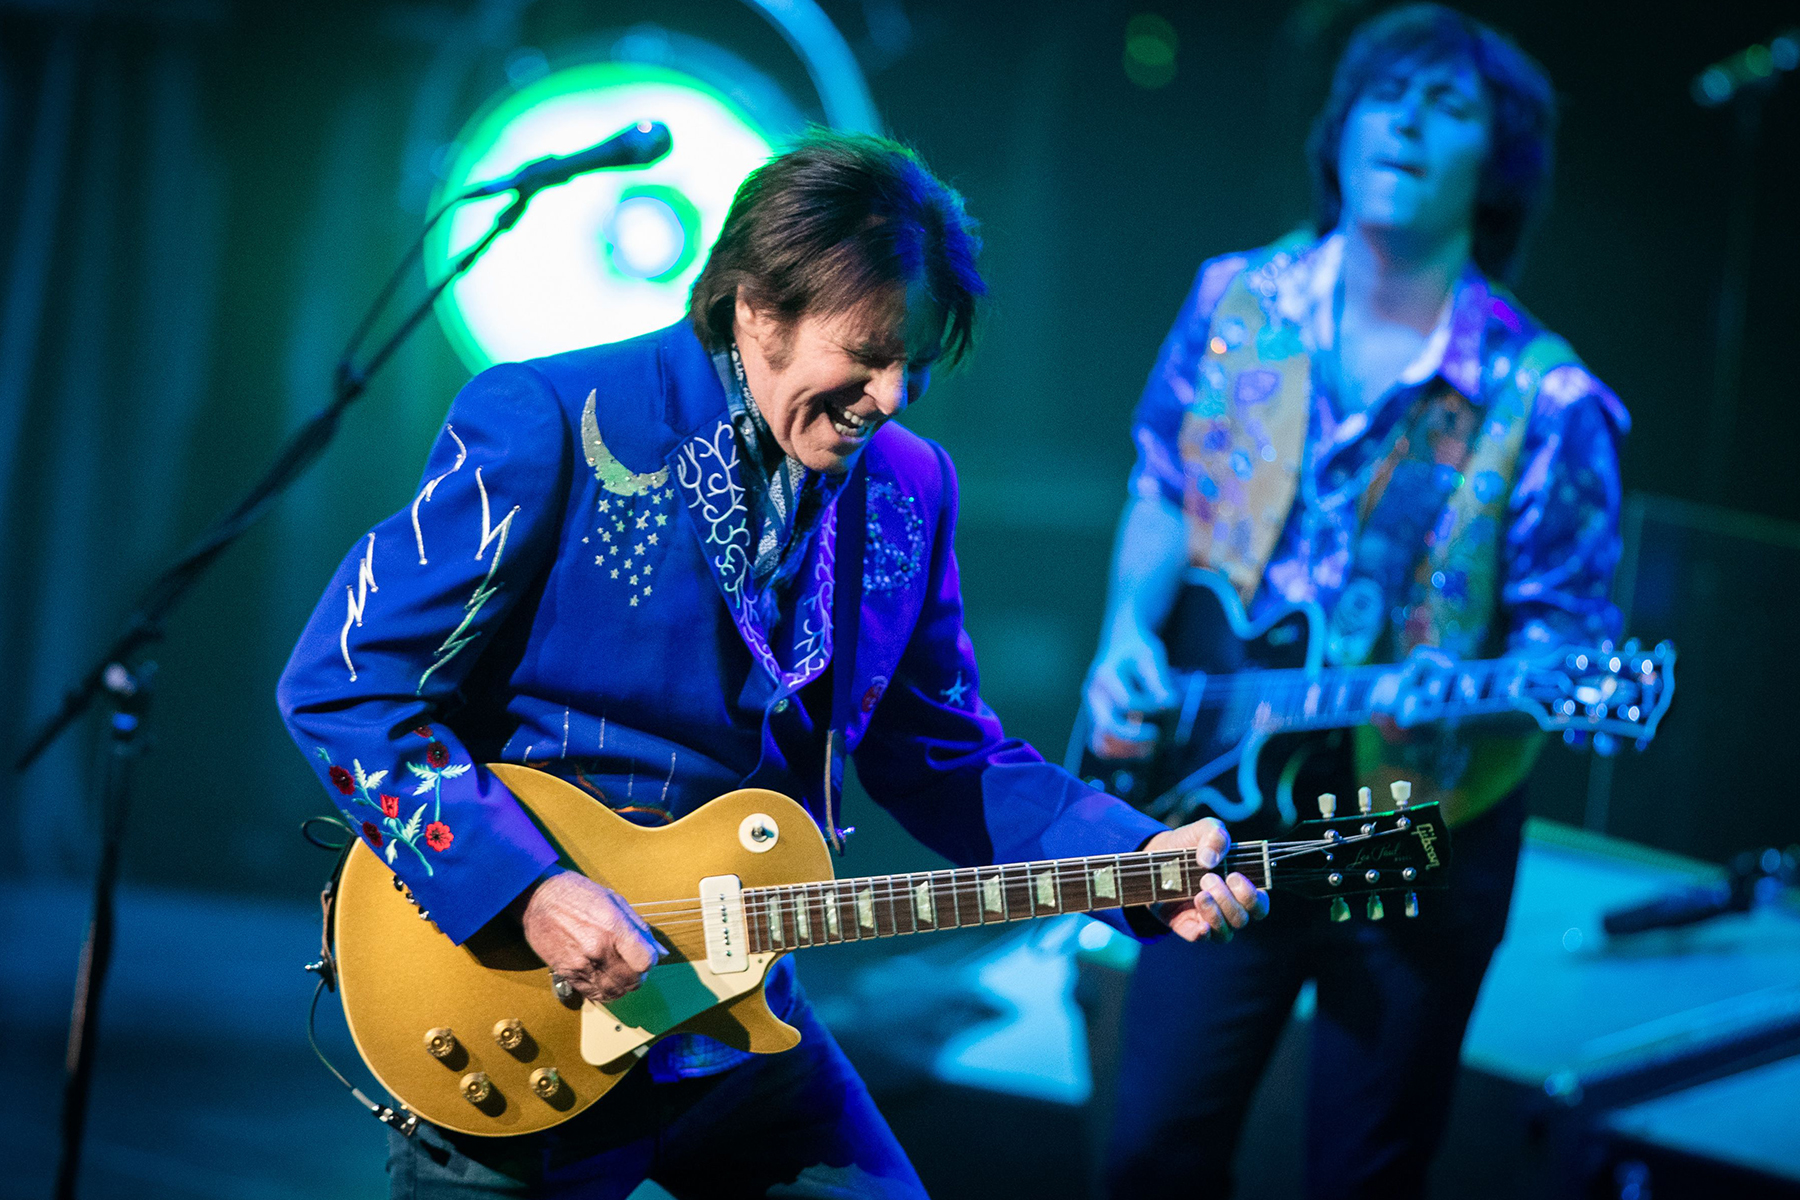 https://celebritycontent.com/2020/04/16/john-fogerty-and-family-cover-creedence-clearwater-revivals-lodi-rolling-stone/